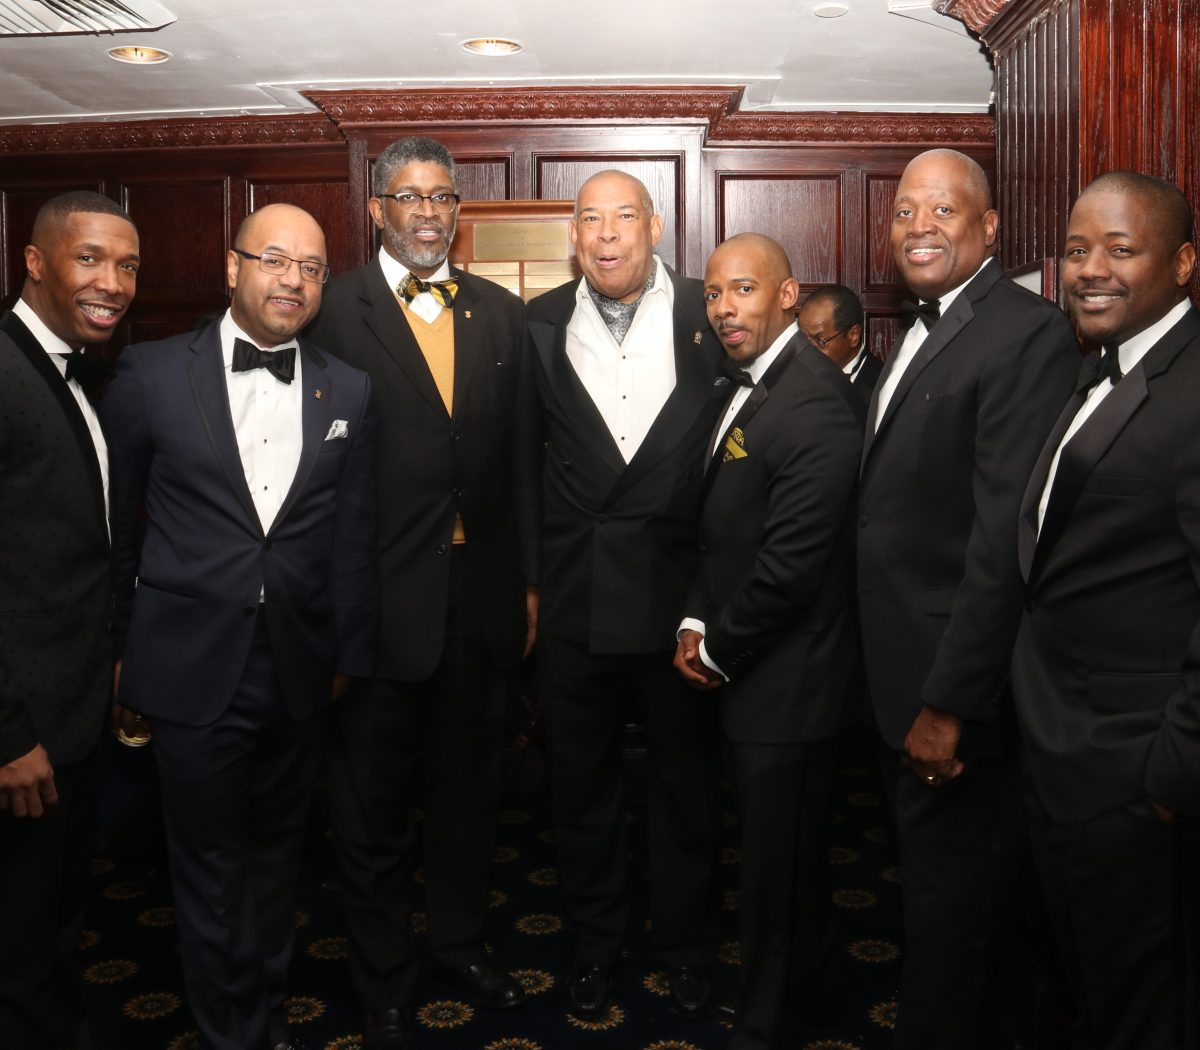 Harry Johnson (2nd left) and supporters at the LetsAllConnect at the inauguration gala of Jeffrey Ballou, 110th President of the National Press Club on Saturday, Jan. 14 at the National Press Club in Northwest. /Photo by Shevry Lassiter